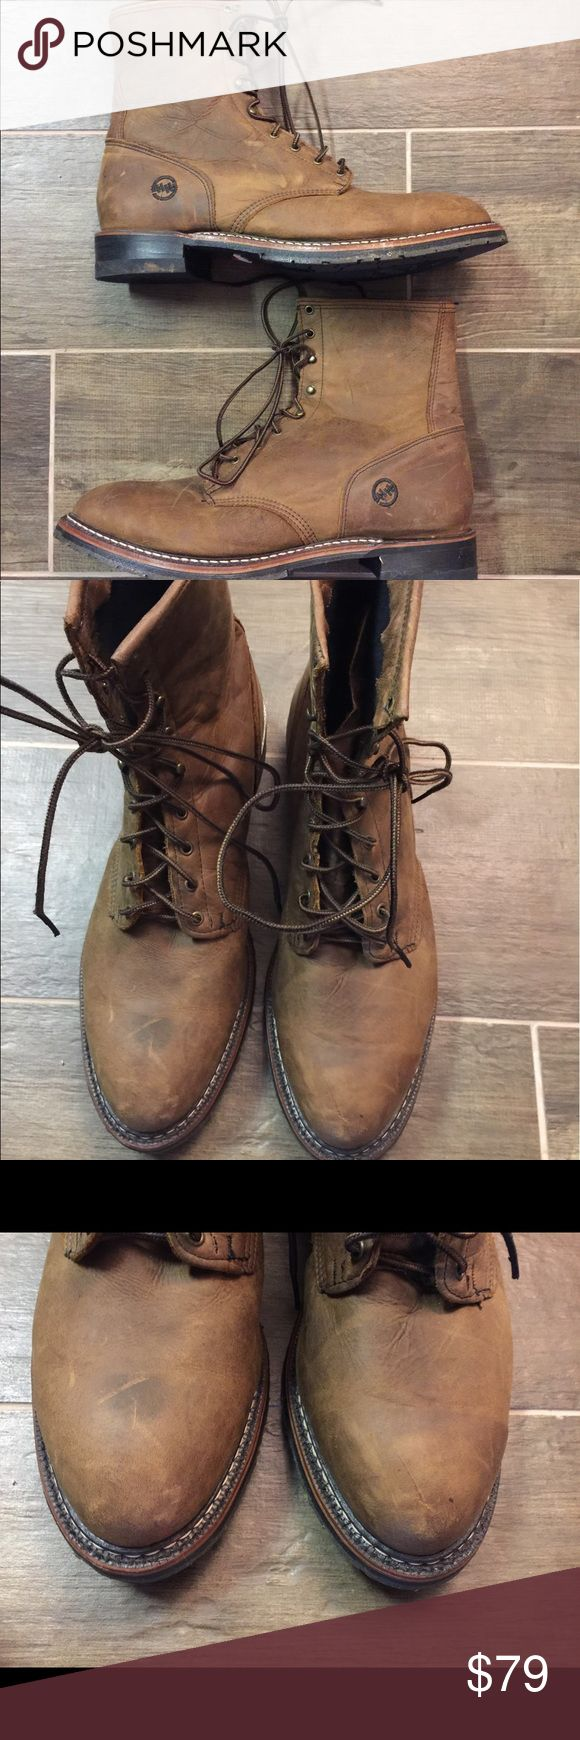 Men's Double H lacer boots size 13 Men's Double H lacer boots size 13. This is a great pair of genuine leather brown lace up boots. They are like new. Only worn a couple of times. Please view all pictures. Double H Shoes Boots